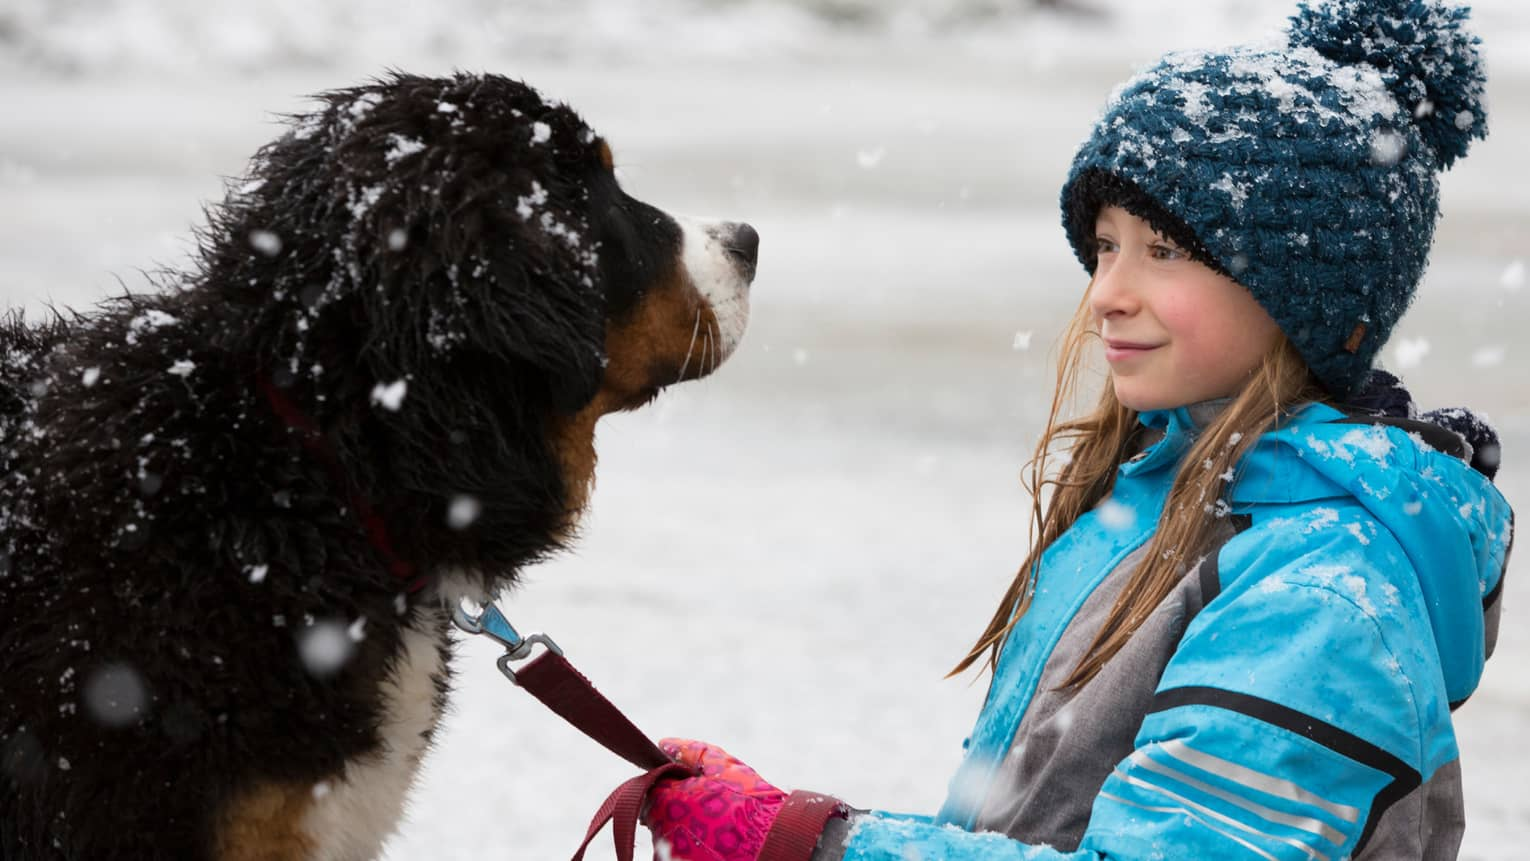 Young girl with knit hat holds leash of large dog as snow falls